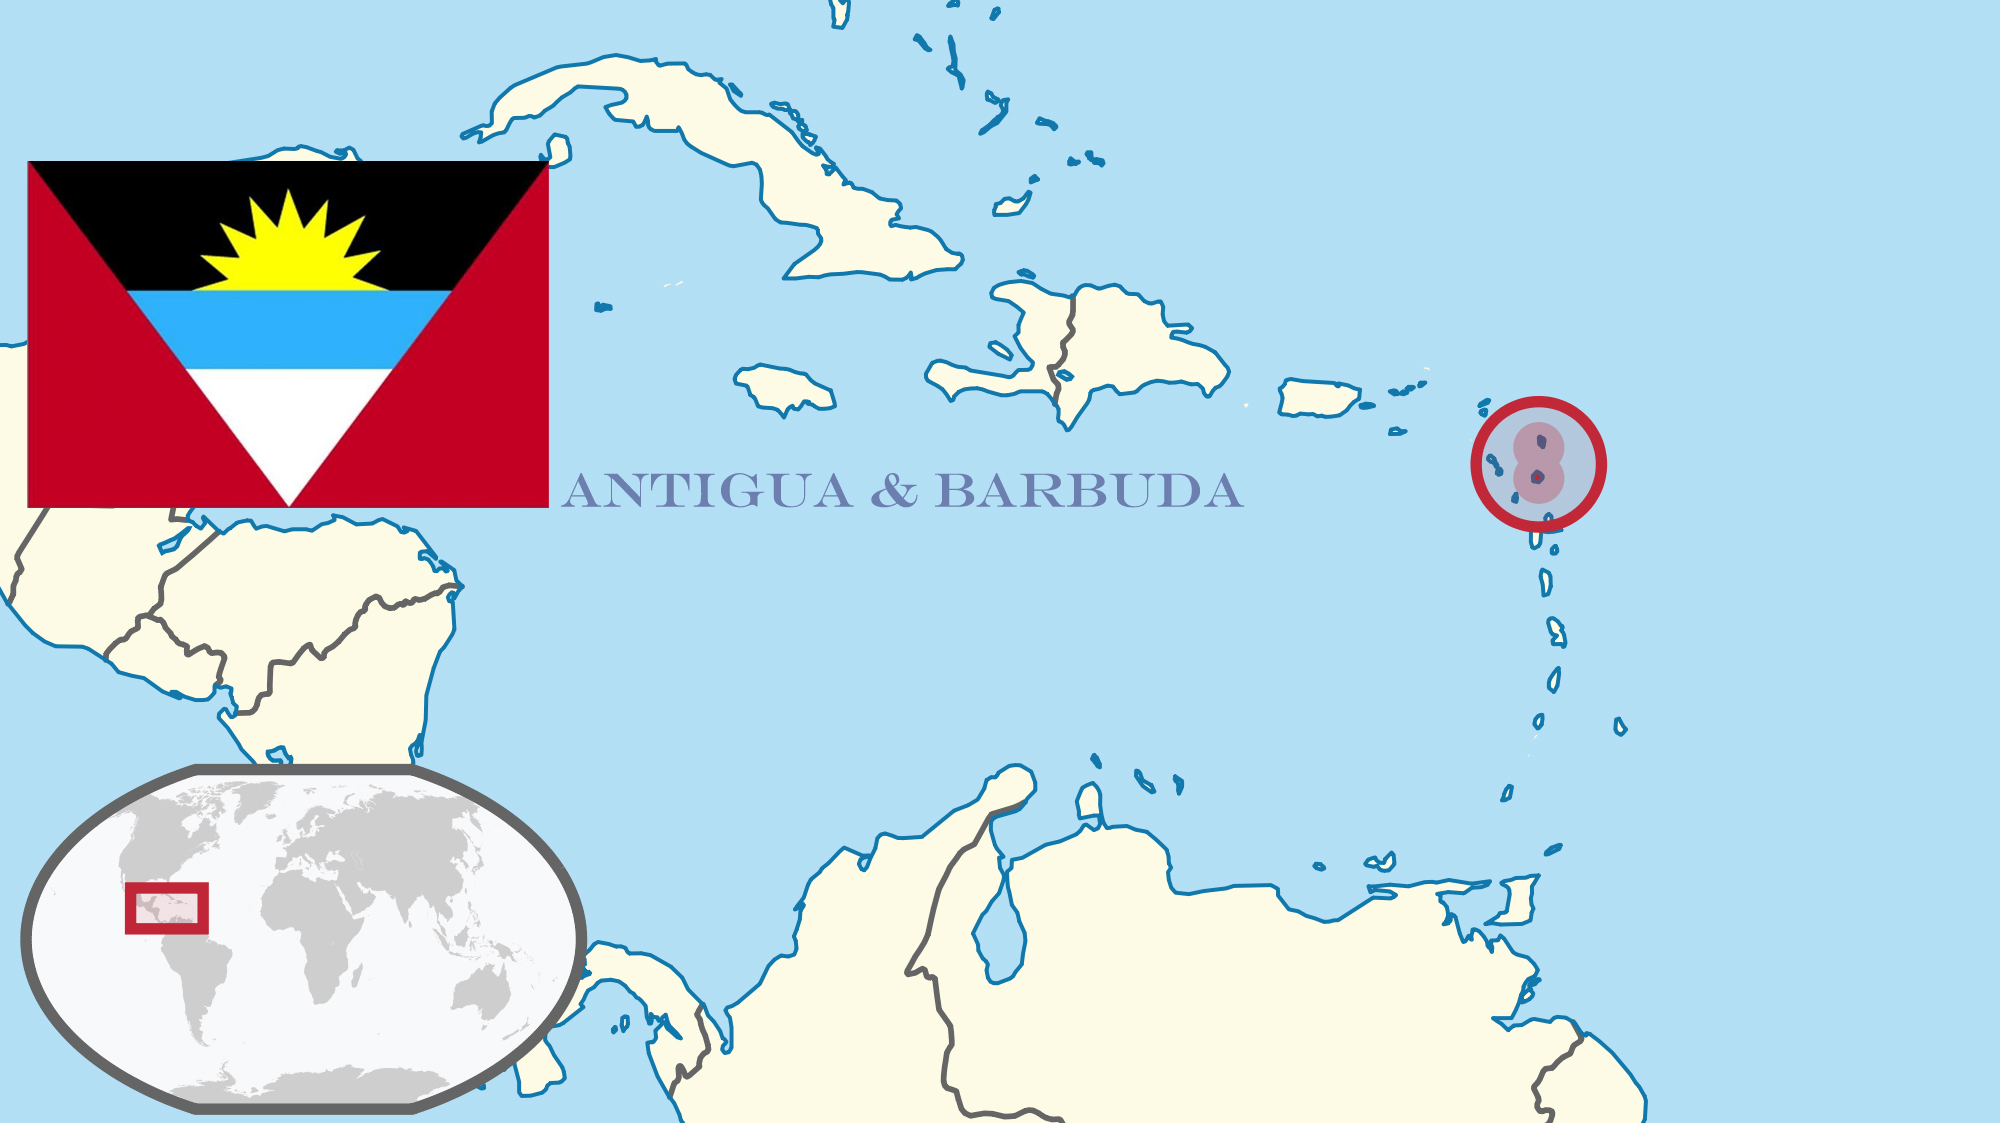 Map of Antigua & Barbuda